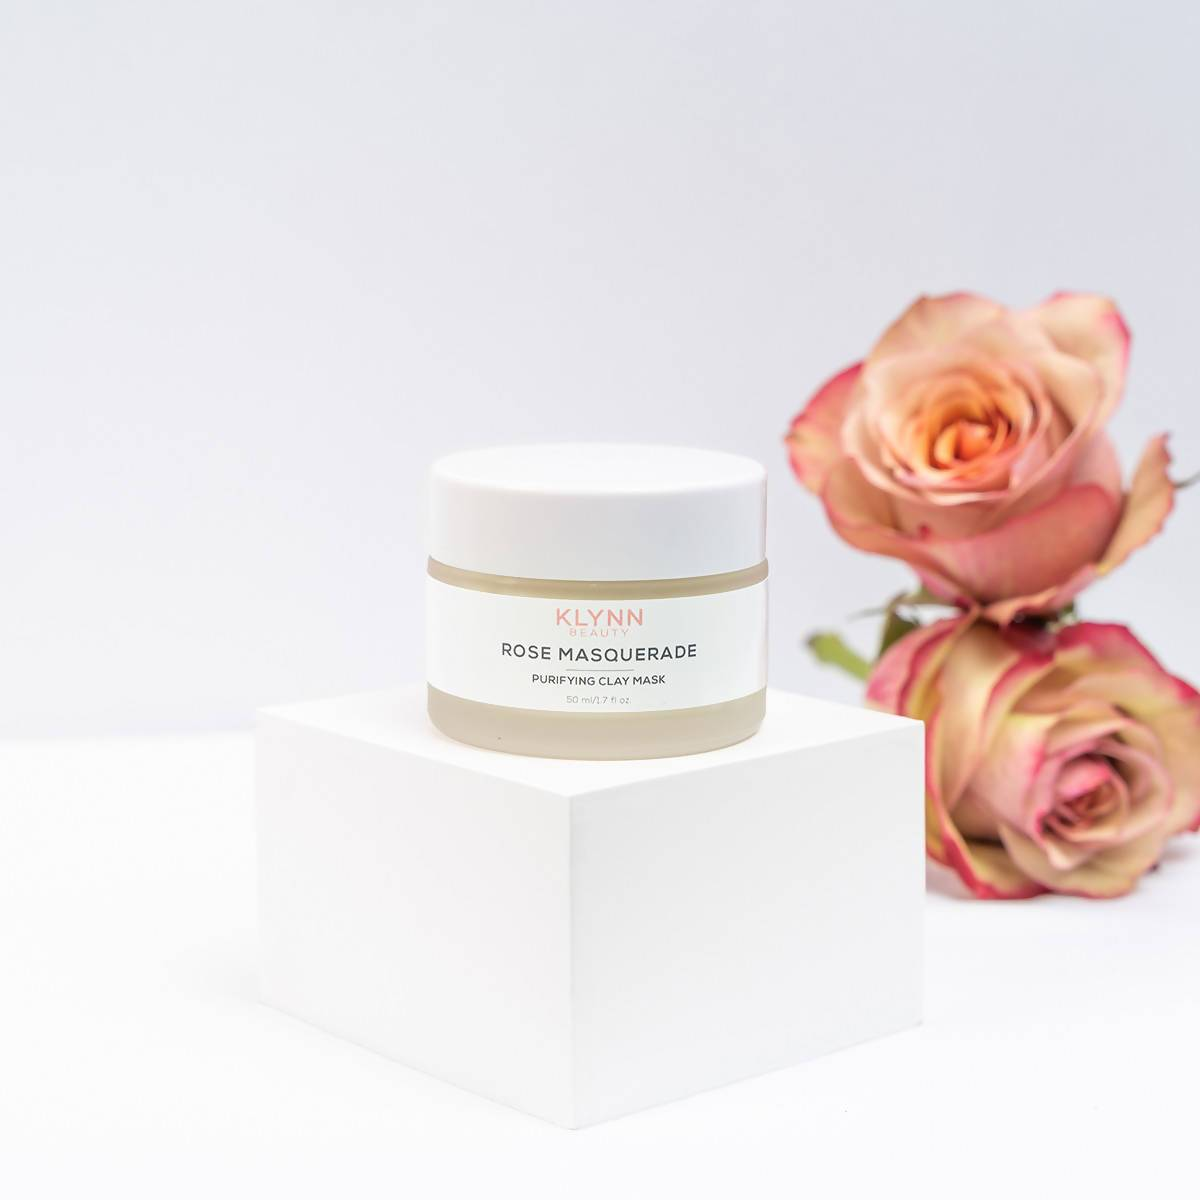 Rose Masquerade Purifying Clay Mask - Face Masks - Klynn Beauty - Naiise